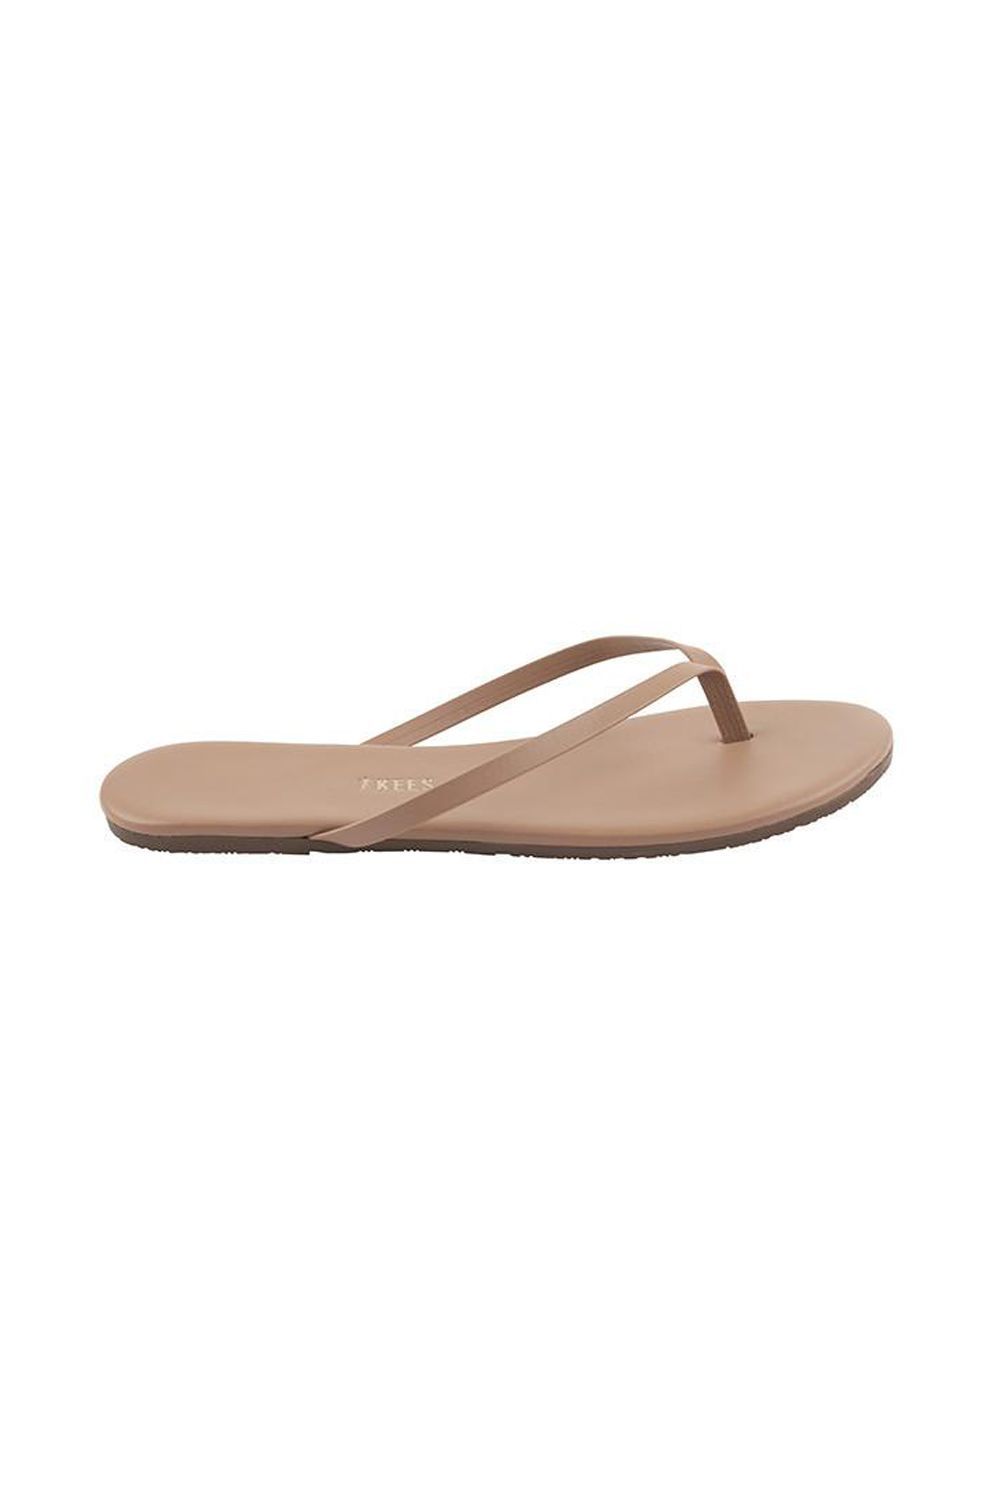 "<p><span class=""redactor-invisible-space"" data-verified=""redactor"" data-redactor-tag=""span"" data-redactor-class=""redactor-invisible-space"">""Nude"" doesn't come in just one shade&#x3B; neither do these ultra-slim flip-flops, now made for an impressively wide range of skin tones.&nbsp&#x3B;</span></p><p><strong data-redactor-tag=""strong"" data-verified=""redactor"">BUY IT: </strong>TKEES, $50&#x3B; <a href=""https://tkees.com/collections/lily-foundations/products/sunkissed"" target=""_blank"" data-tracking-id=""recirc-text-link"">tkees.com</a>.</p>"